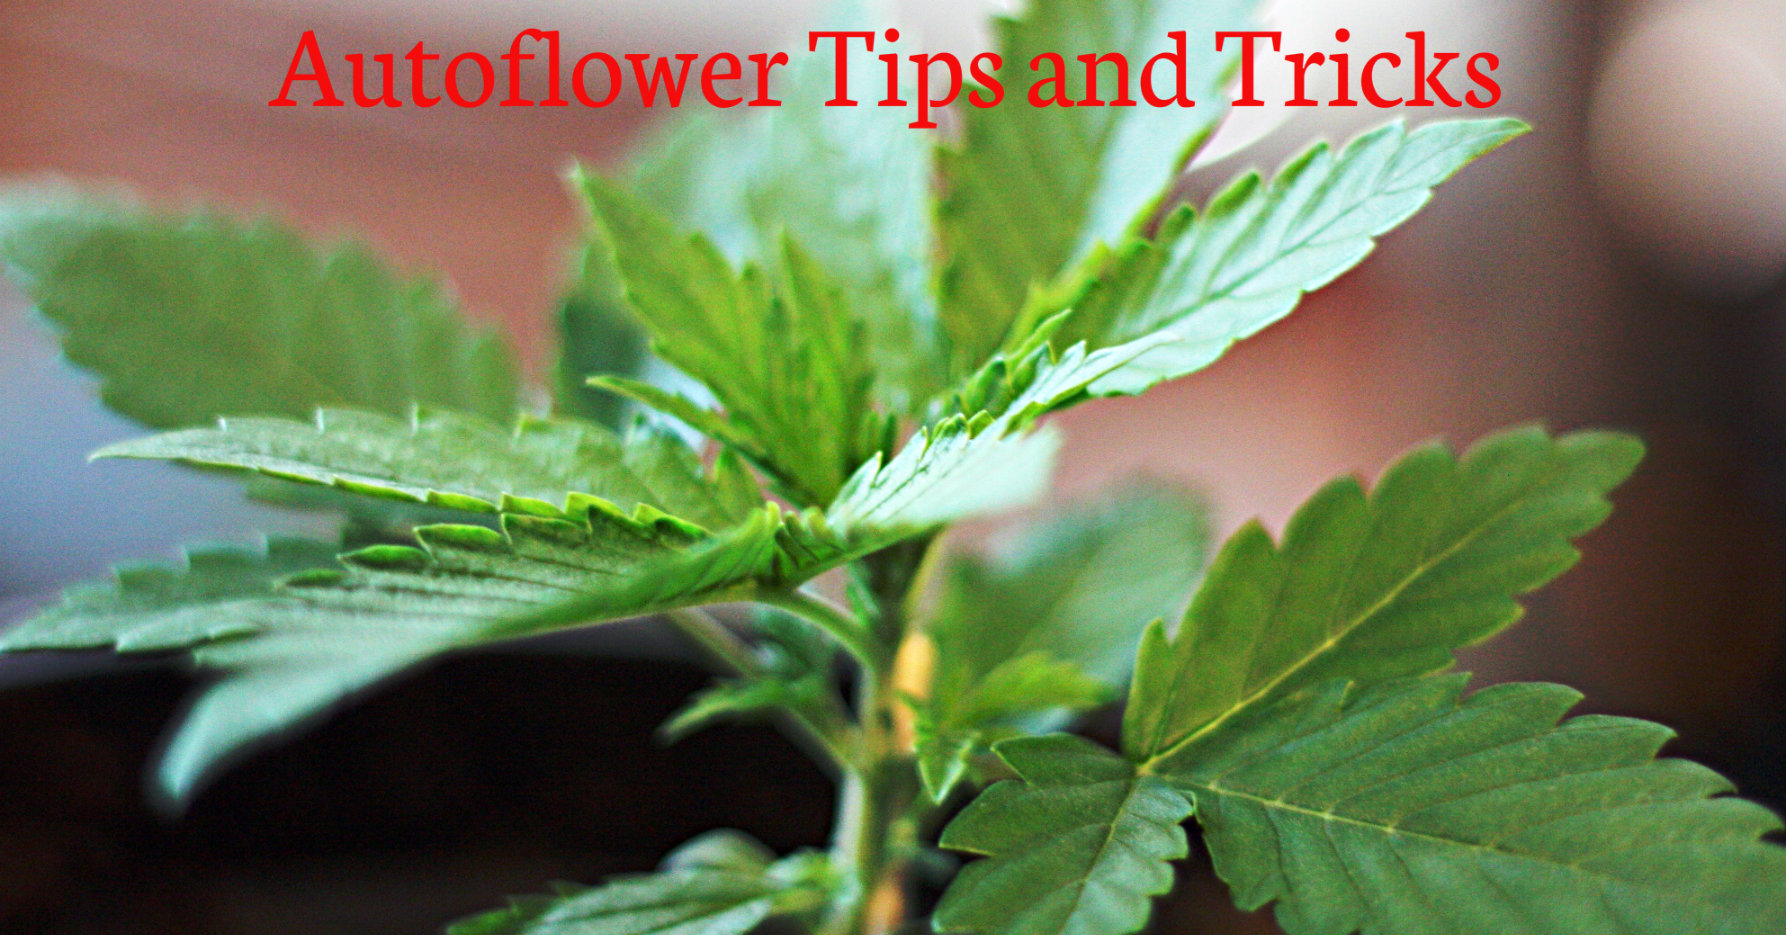 Autoflower Tips And Tricks on Pre Plant Life Cycle